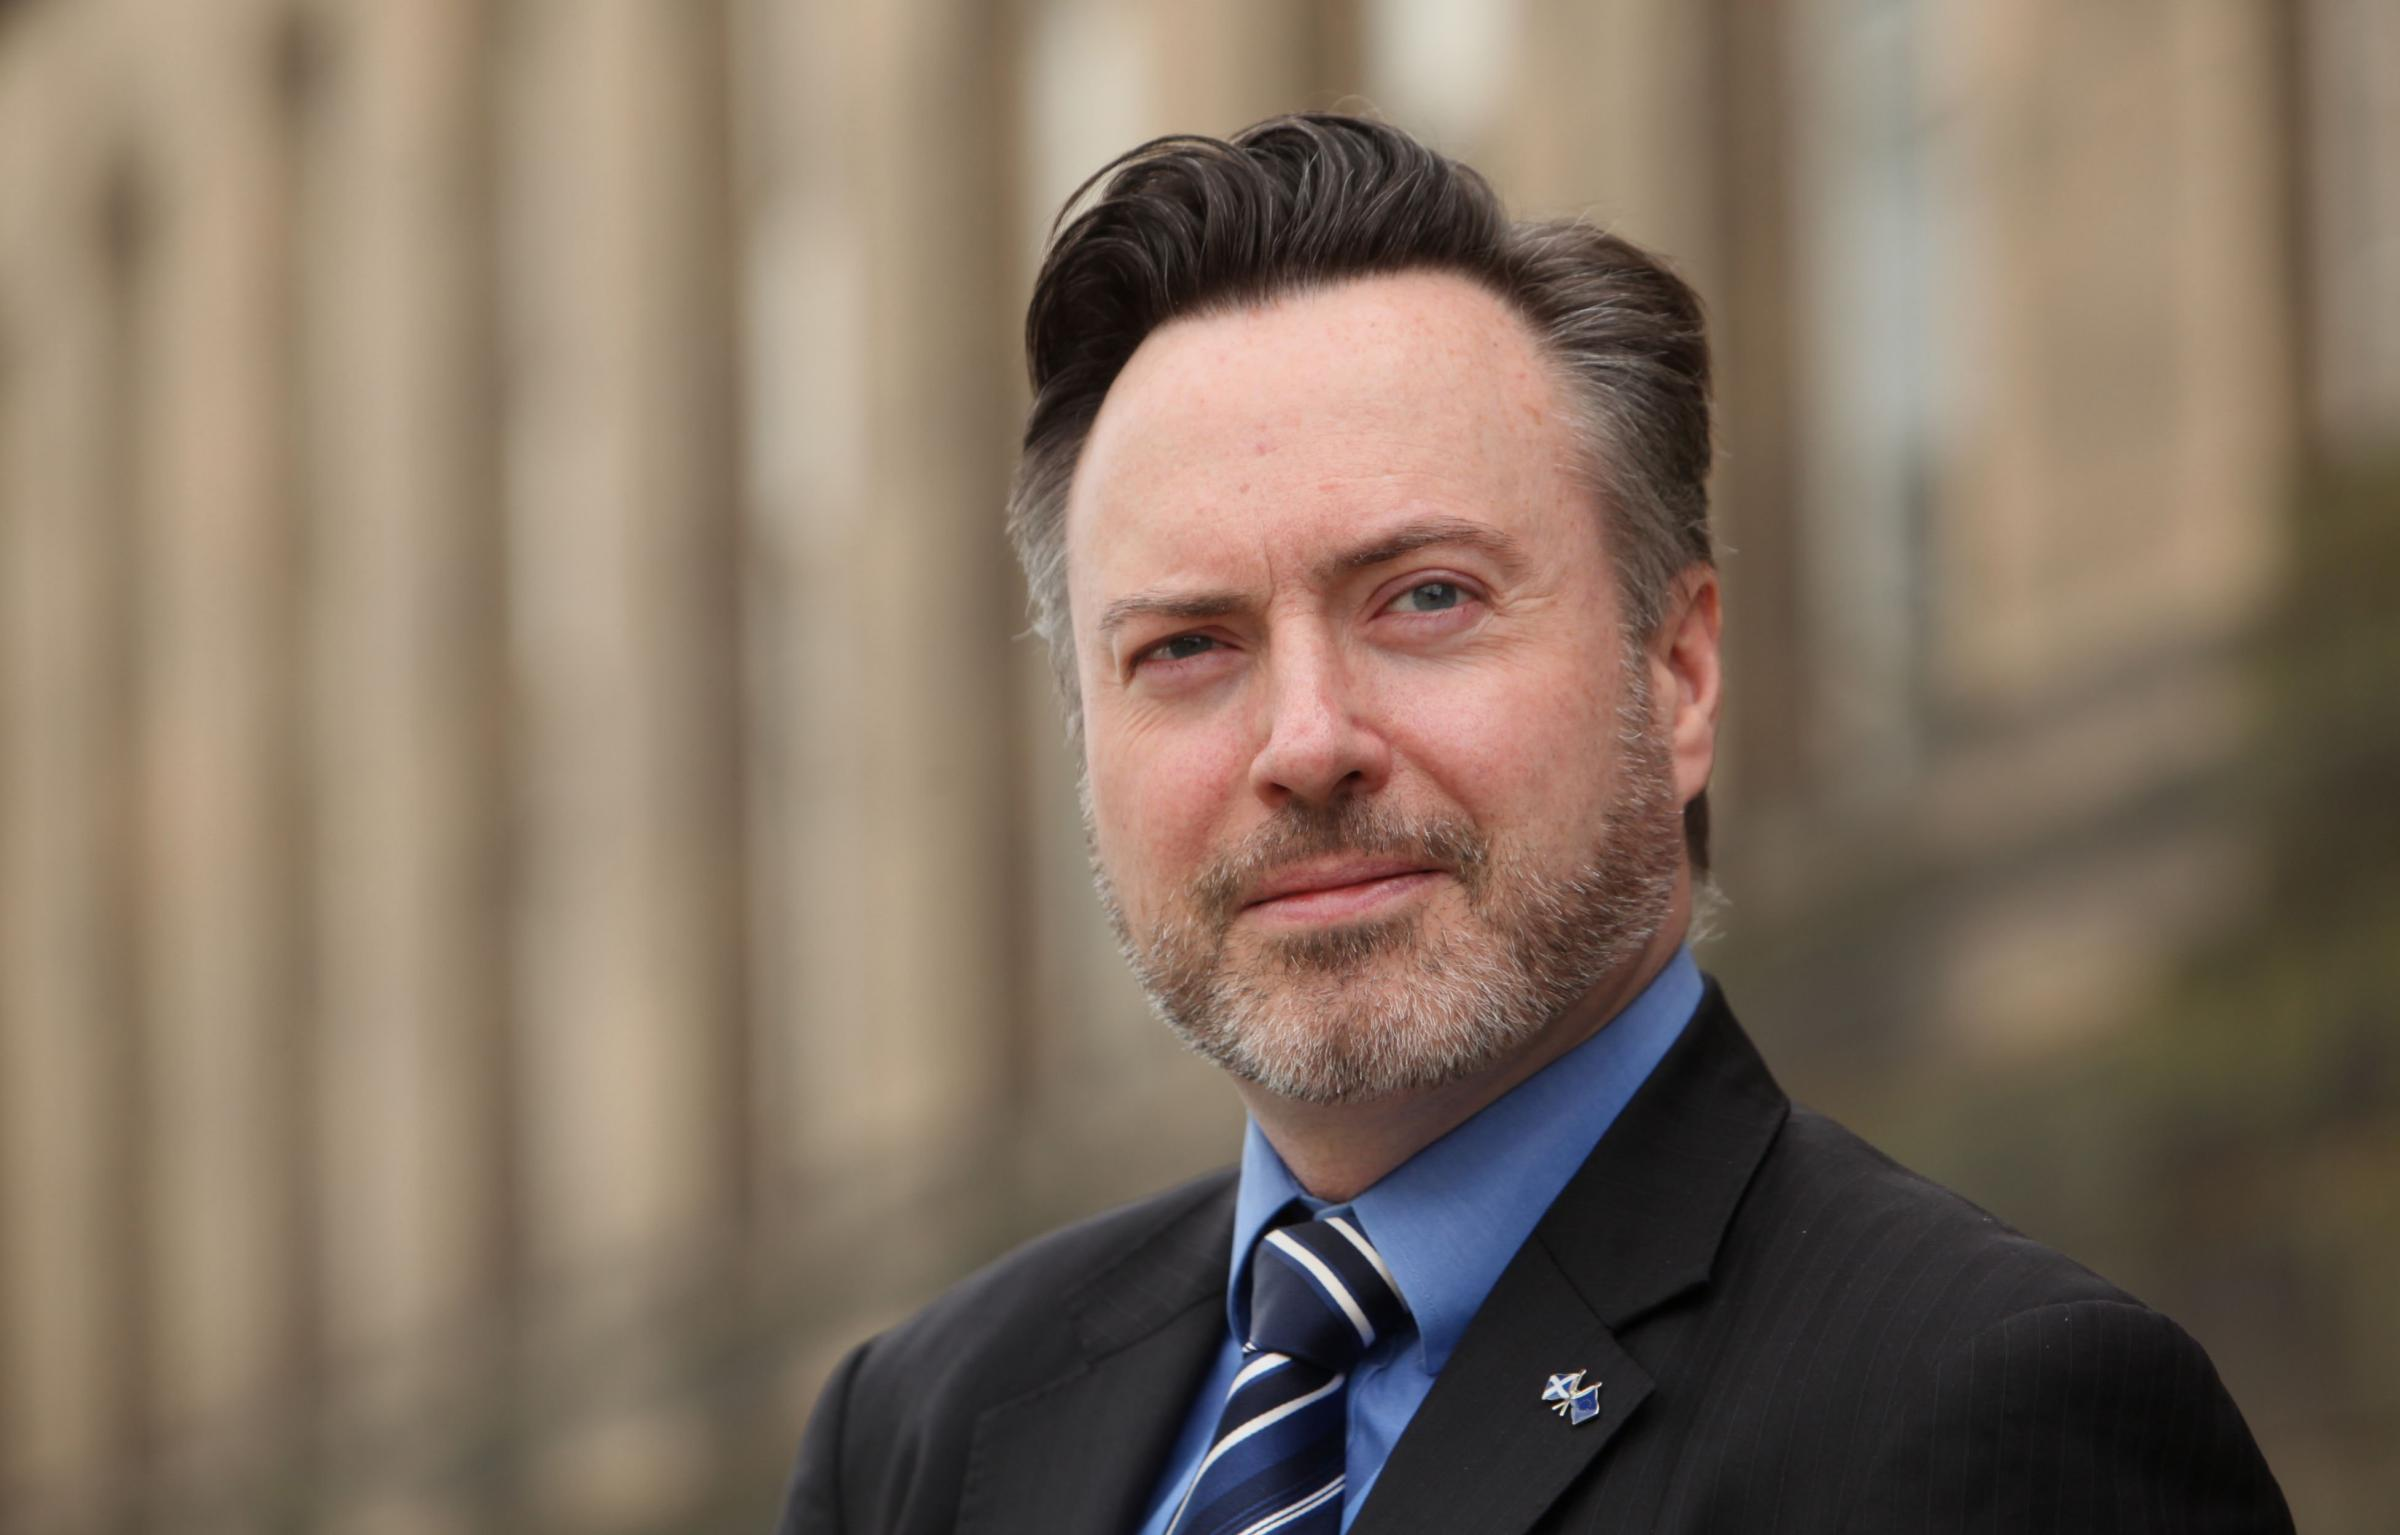 Alyn Smith has joined forces with MSPs and MEPs from other parties to take a case to the European Court of Justice